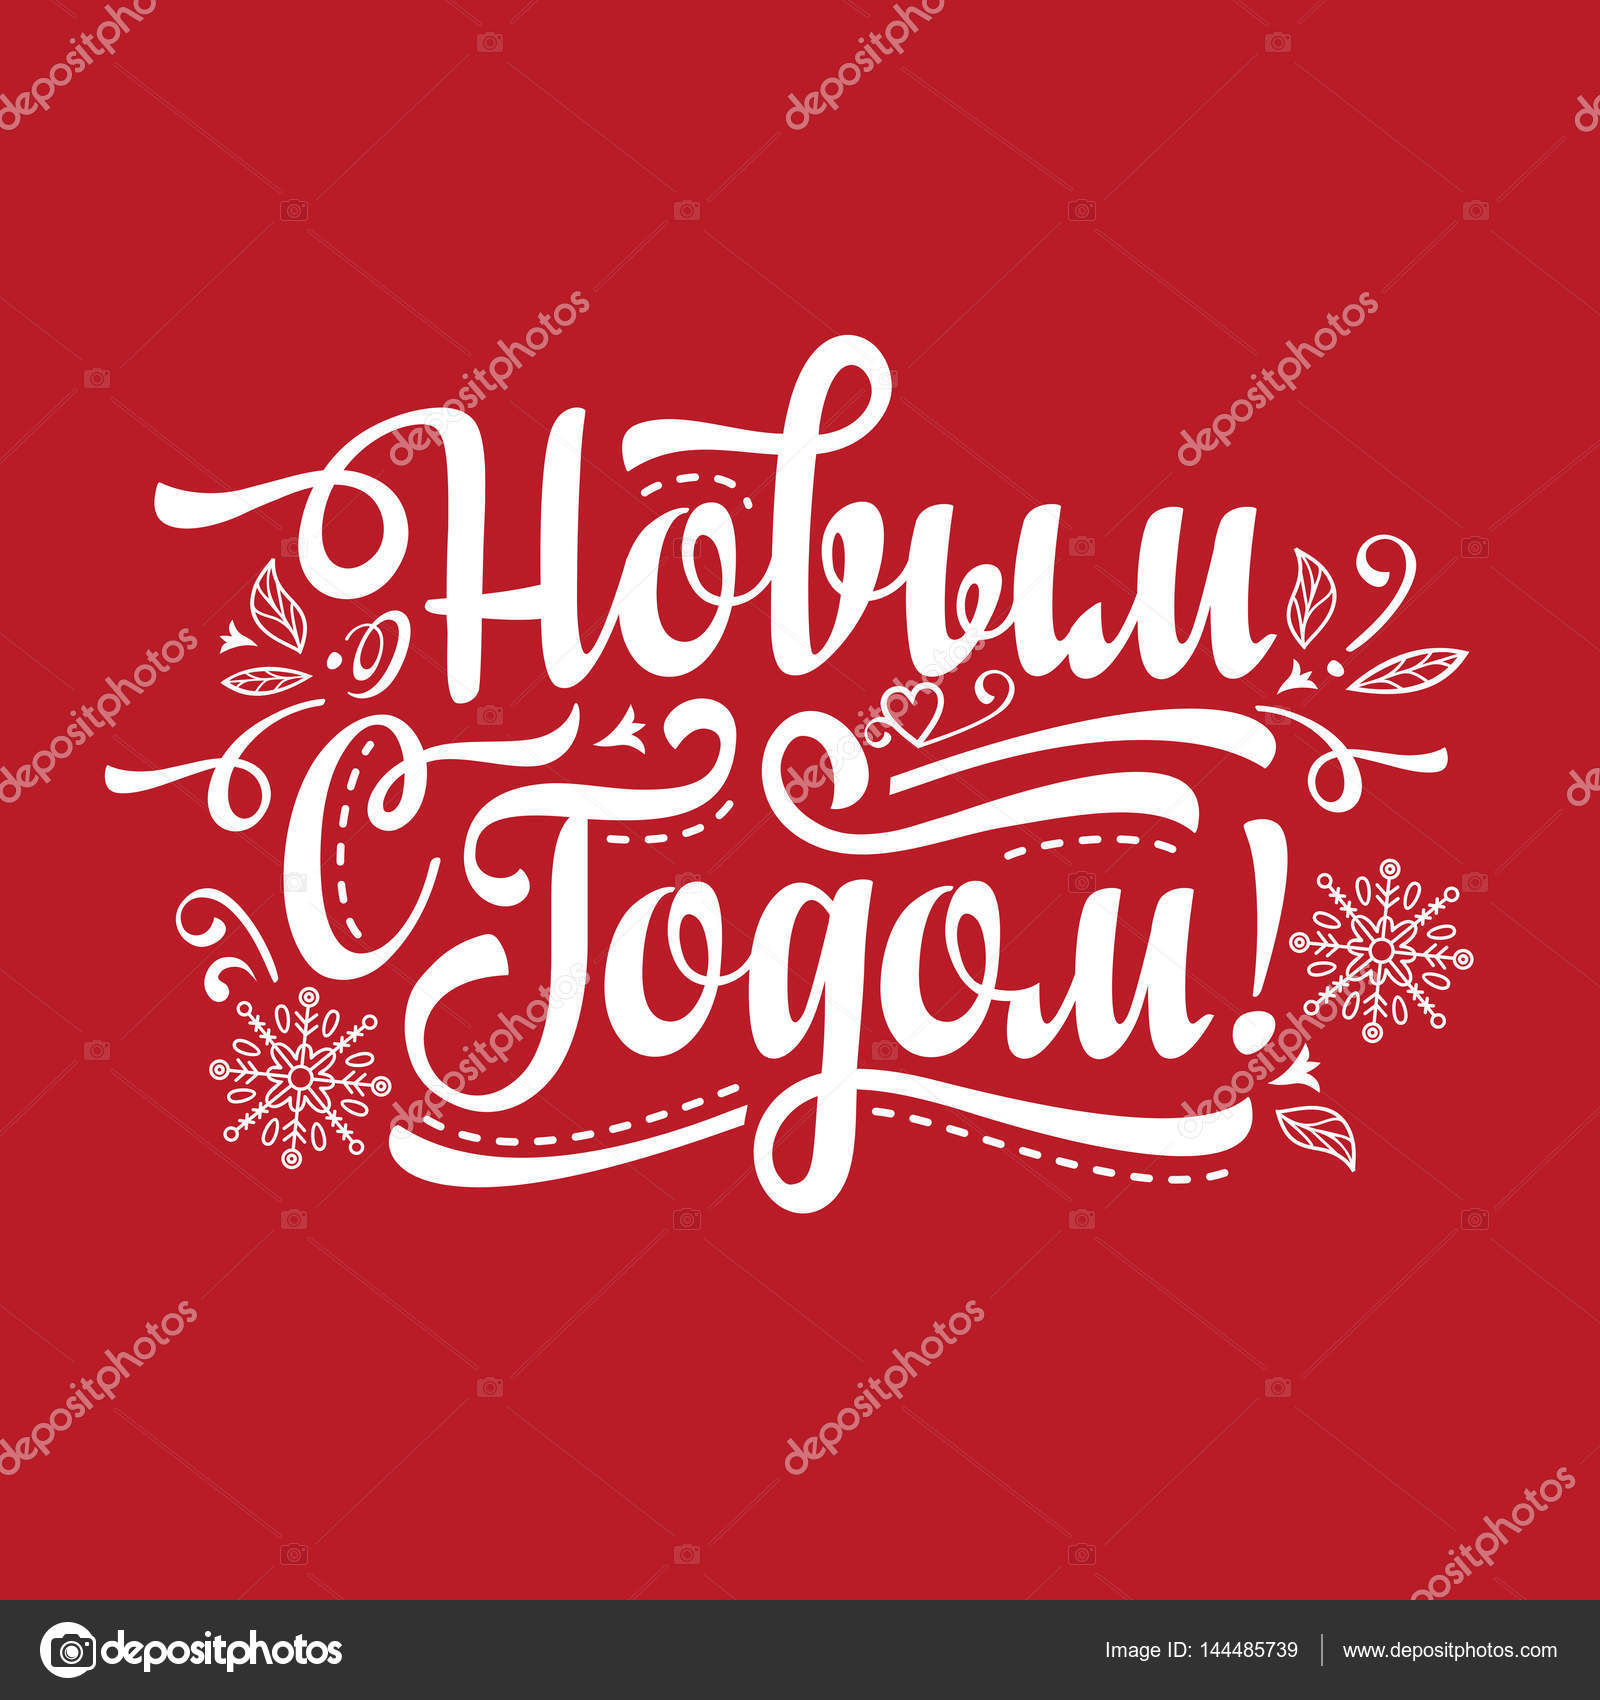 New year holiday background phrase in russian language stock phrase in russian language warm wishes for happy holidays in cyrillic english translation happy new year vector by zzn kristyandbryce Choice Image